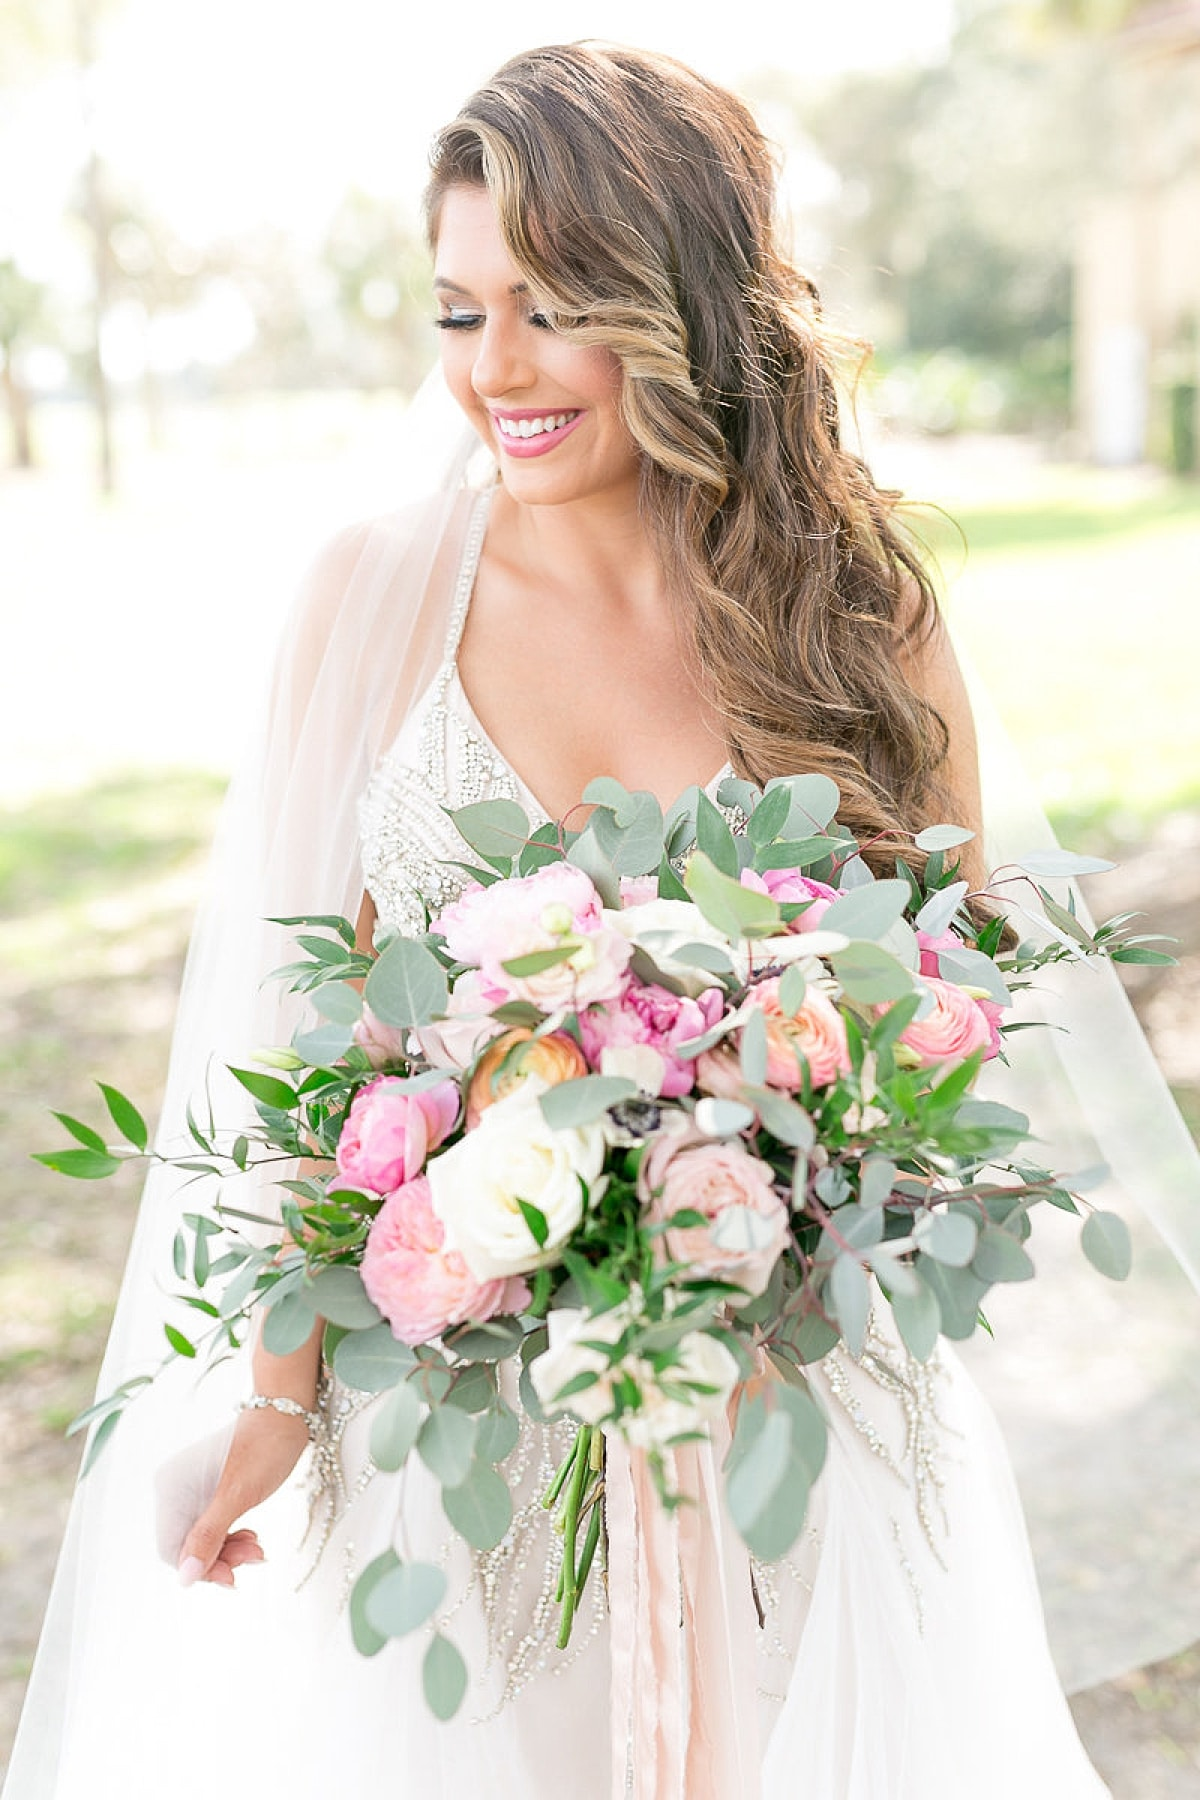 Bride in Hailey Paige Gown holding beautiful wedding bouquet